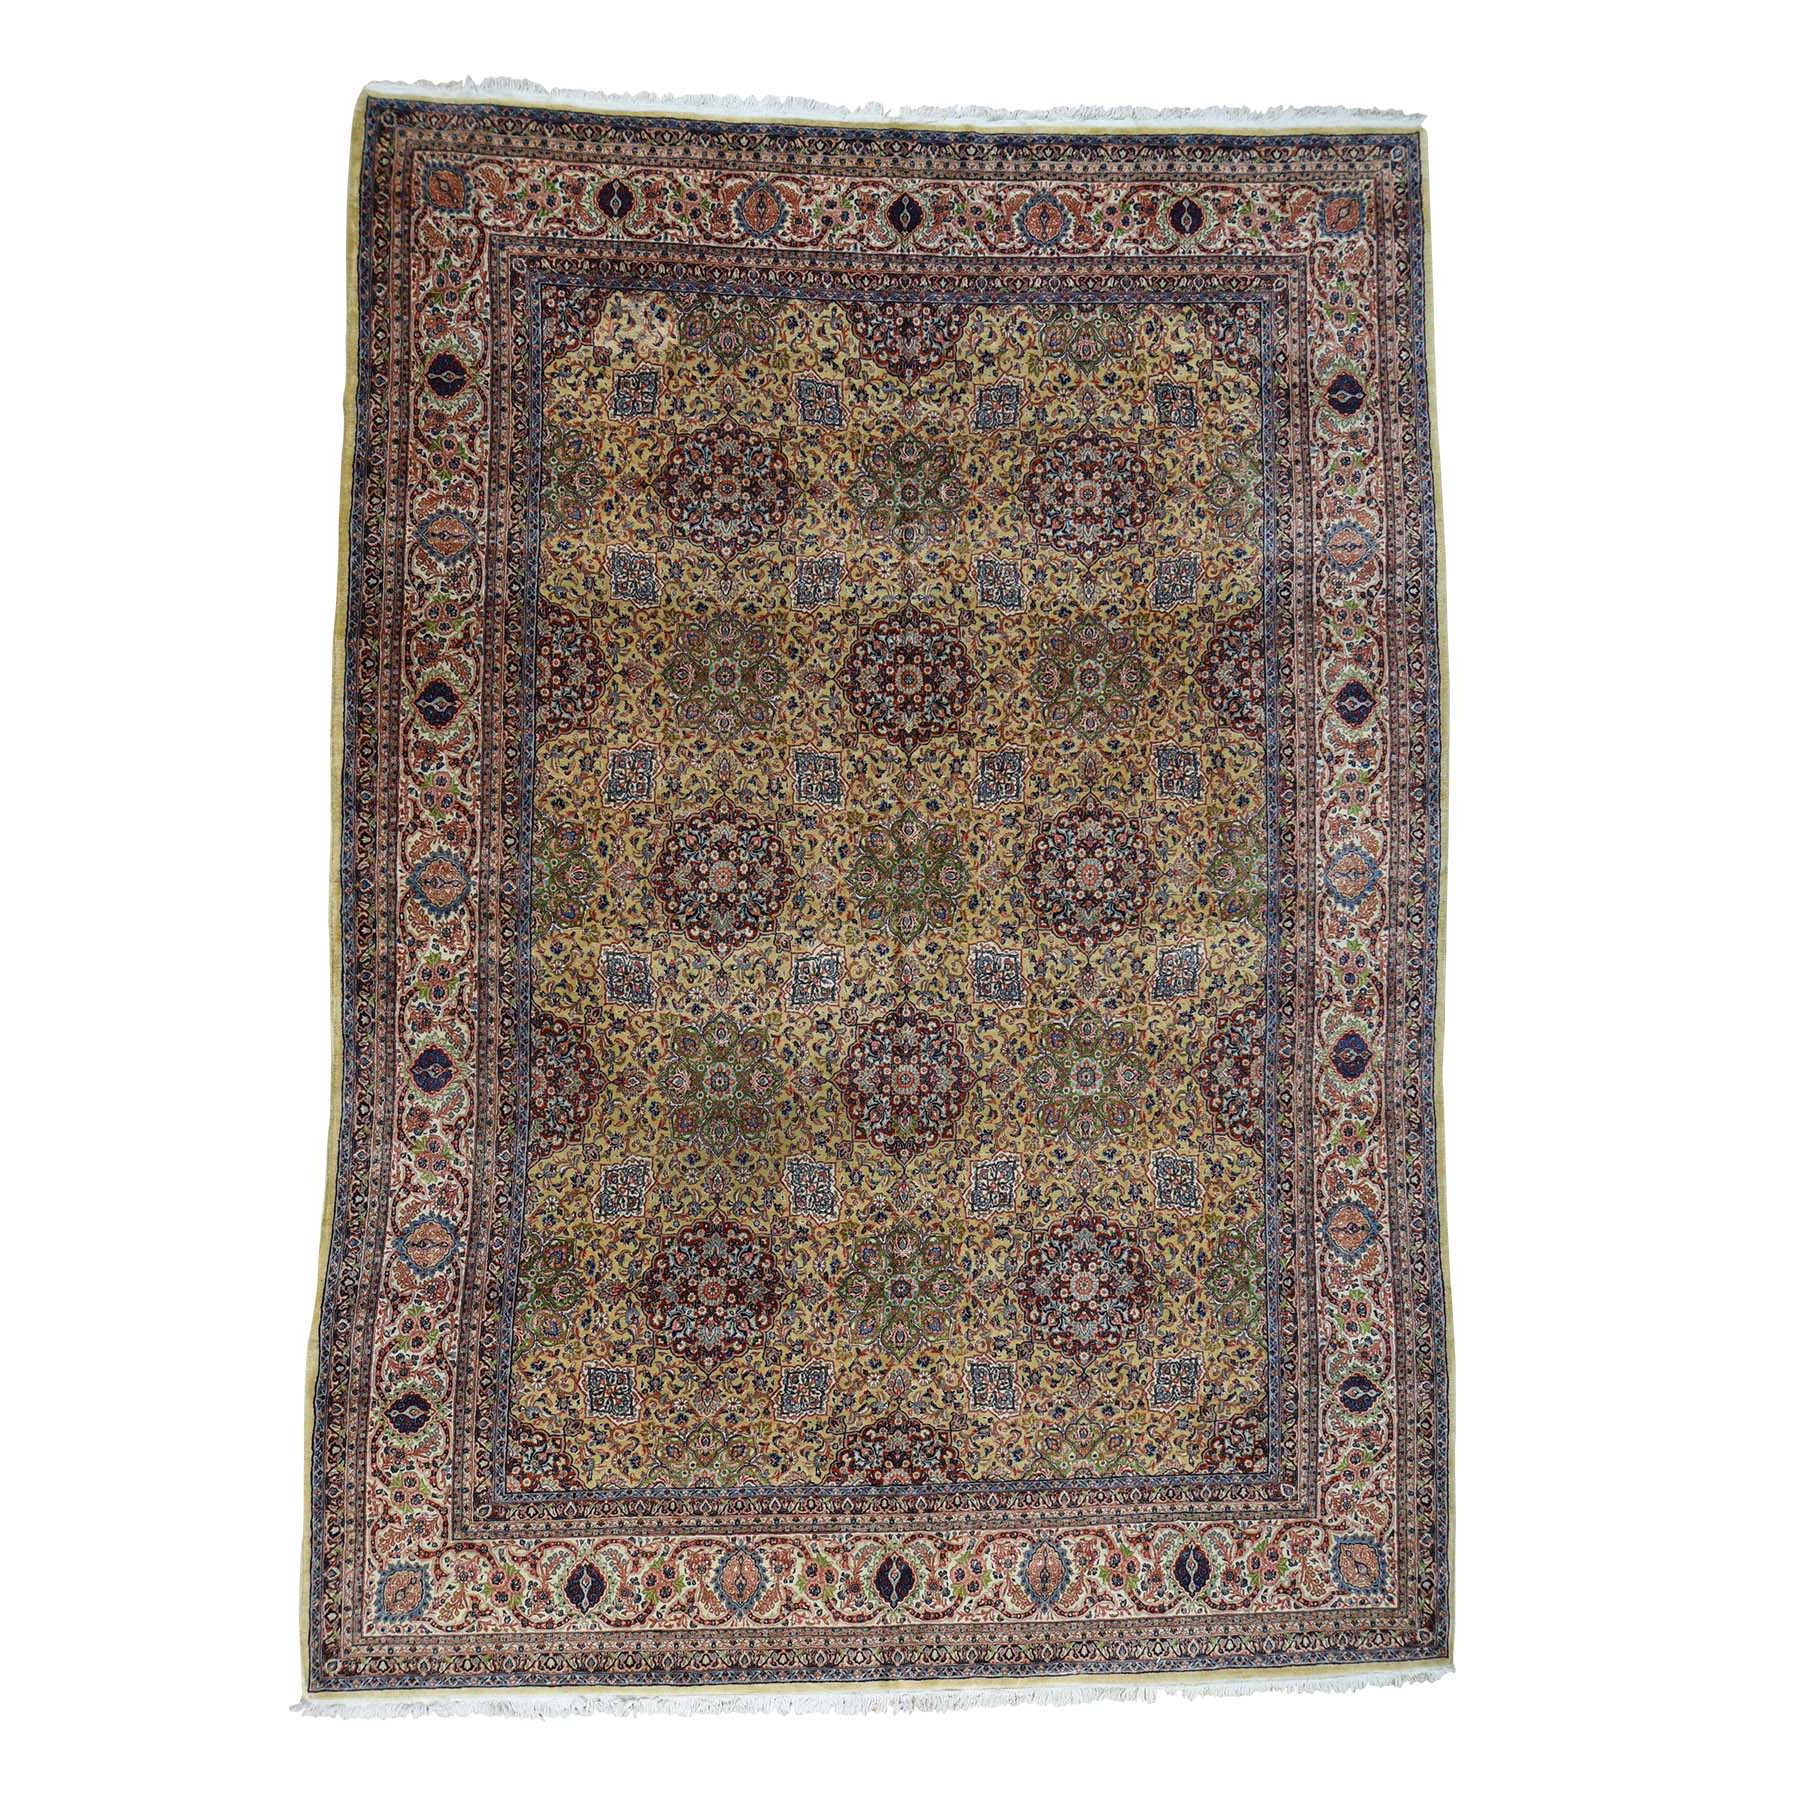 11'1''x15'7'' Antique Persian Sherkat Hand Knotted Mint Cond Oversize Rug